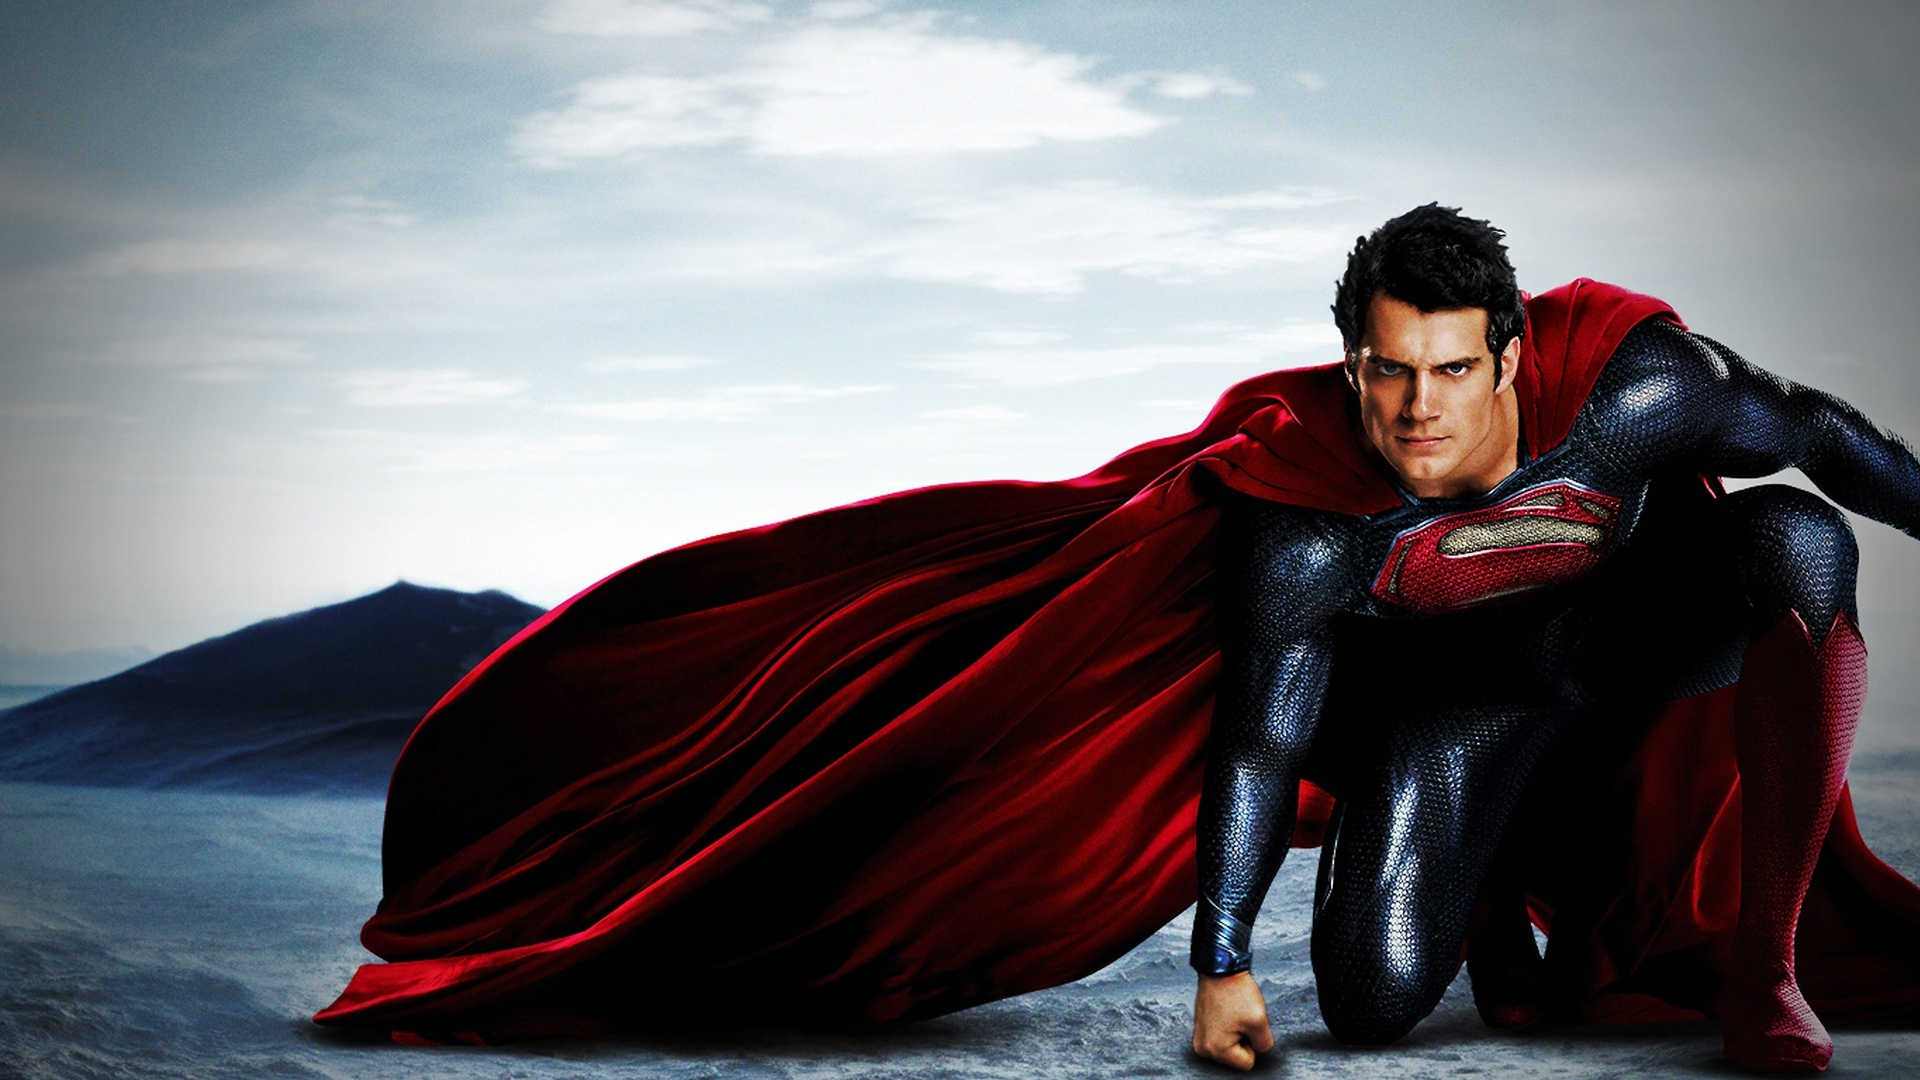 man-of-steel-poster-1080p-hd-wallpaper-movies.jpg